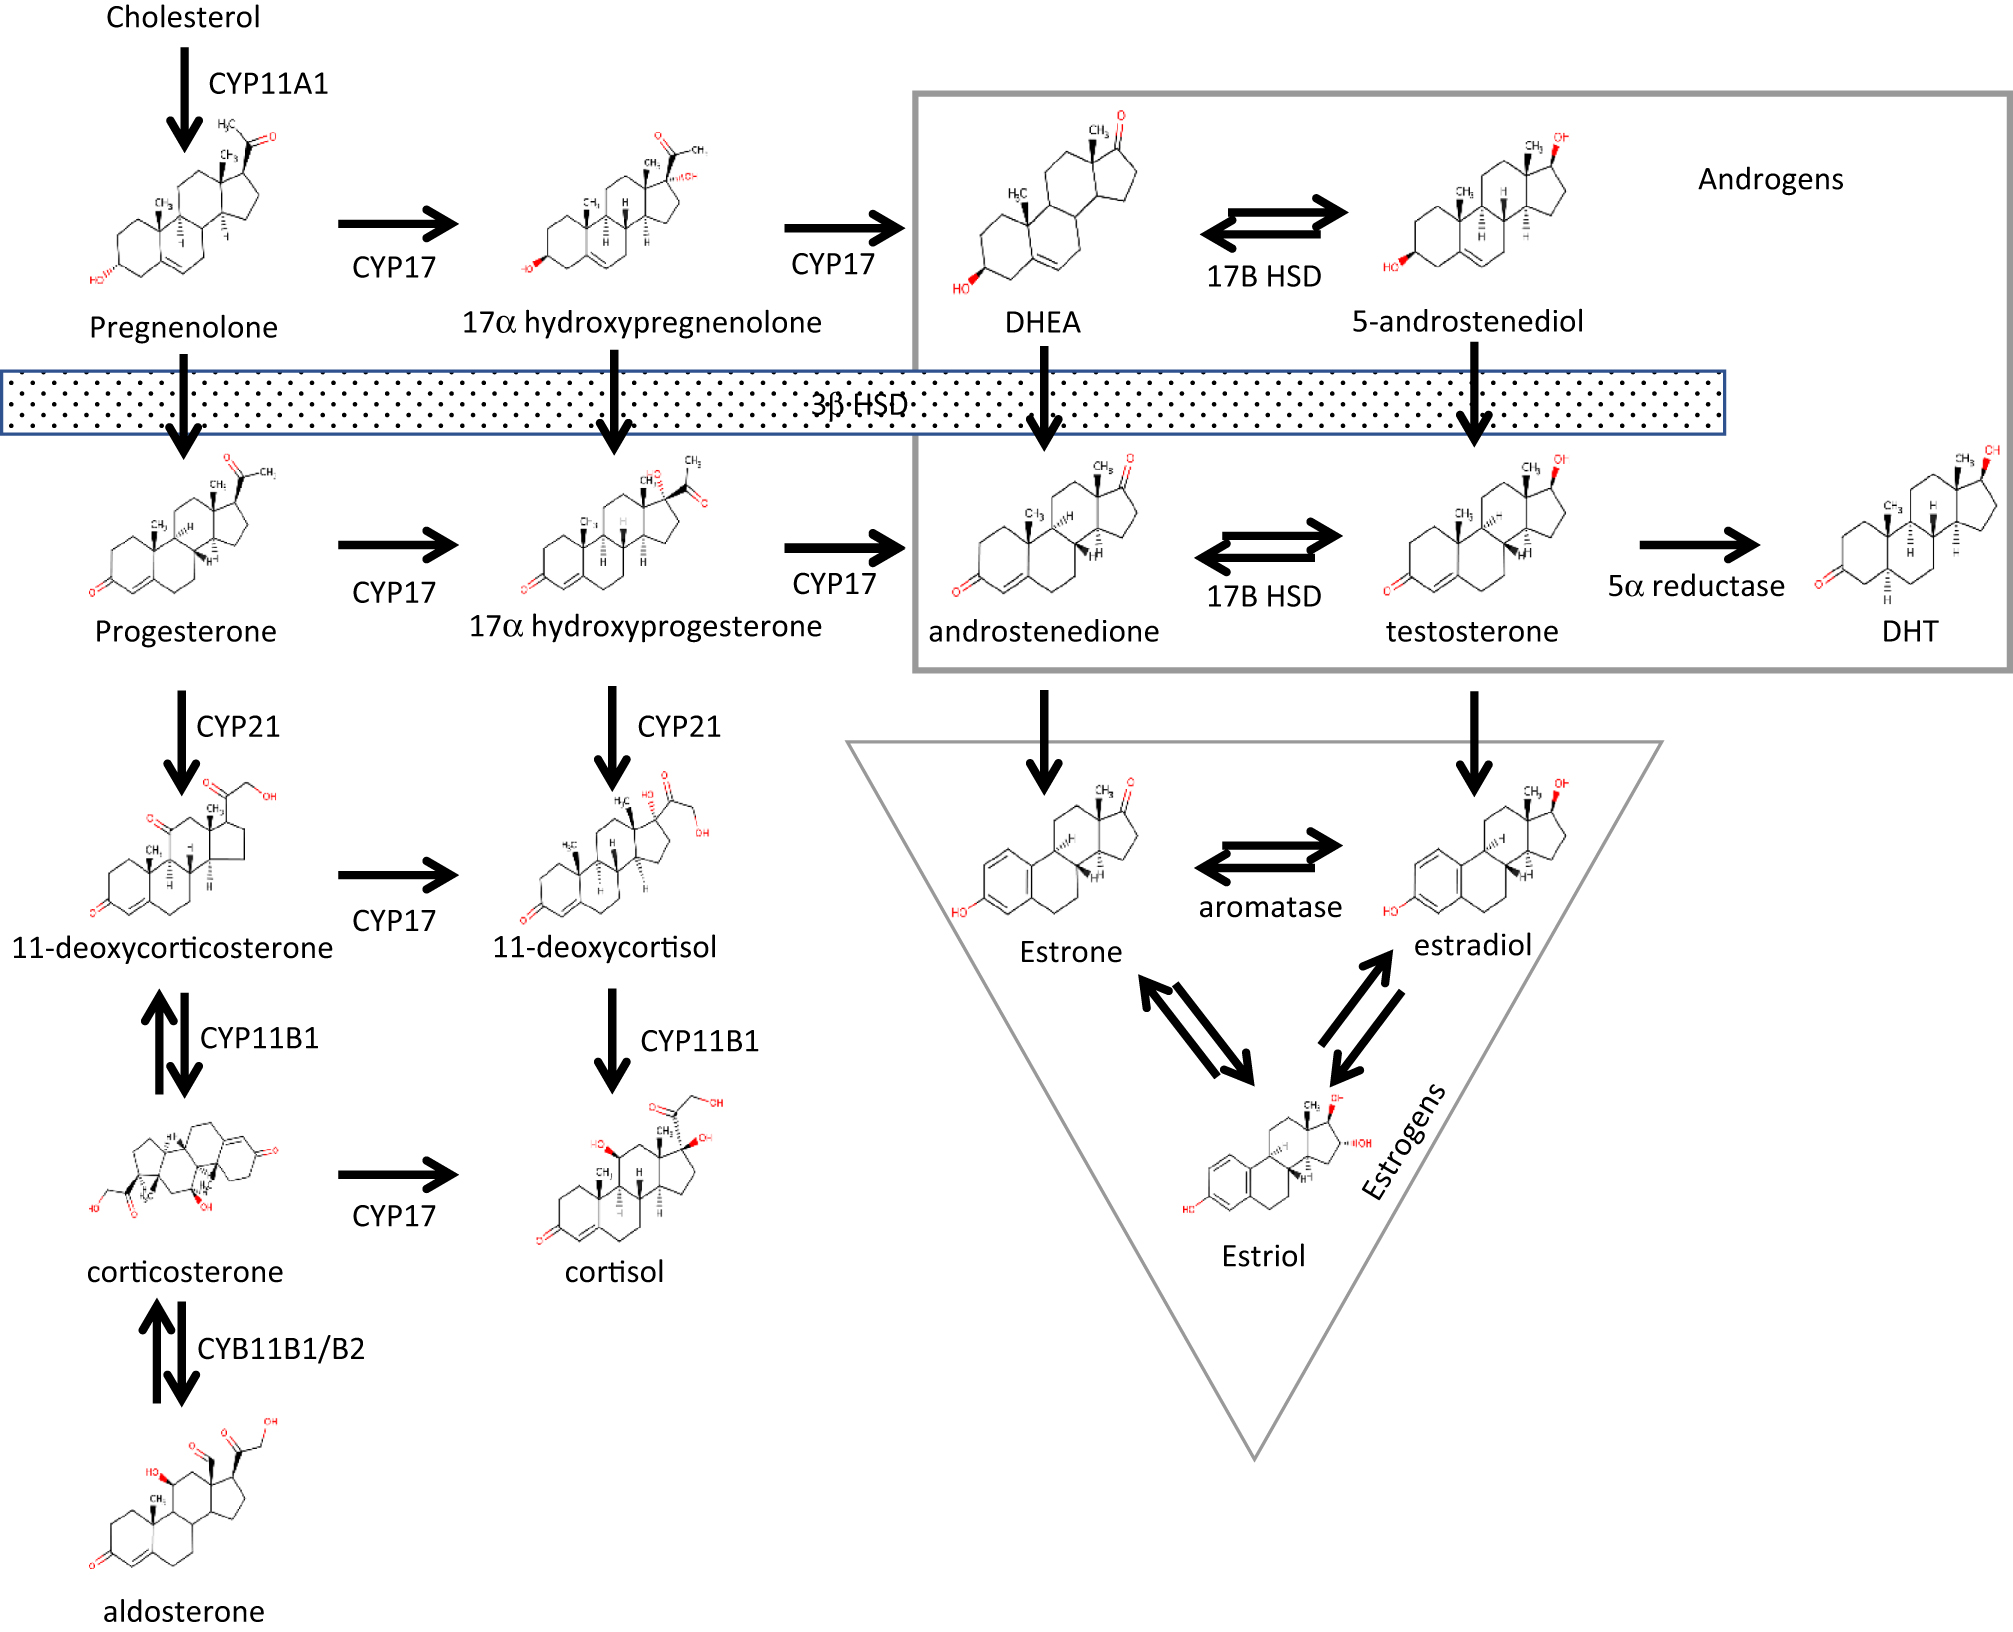 Sex Steroids In The Tumor Microenvironment And Prostate Cancer Schumacher Se 1520 Wiring Diagram Schematic Of Steroid Biosynthesis Pathway Data From Locke Et Al 2009 A Full Color Version This Figure Is Available At